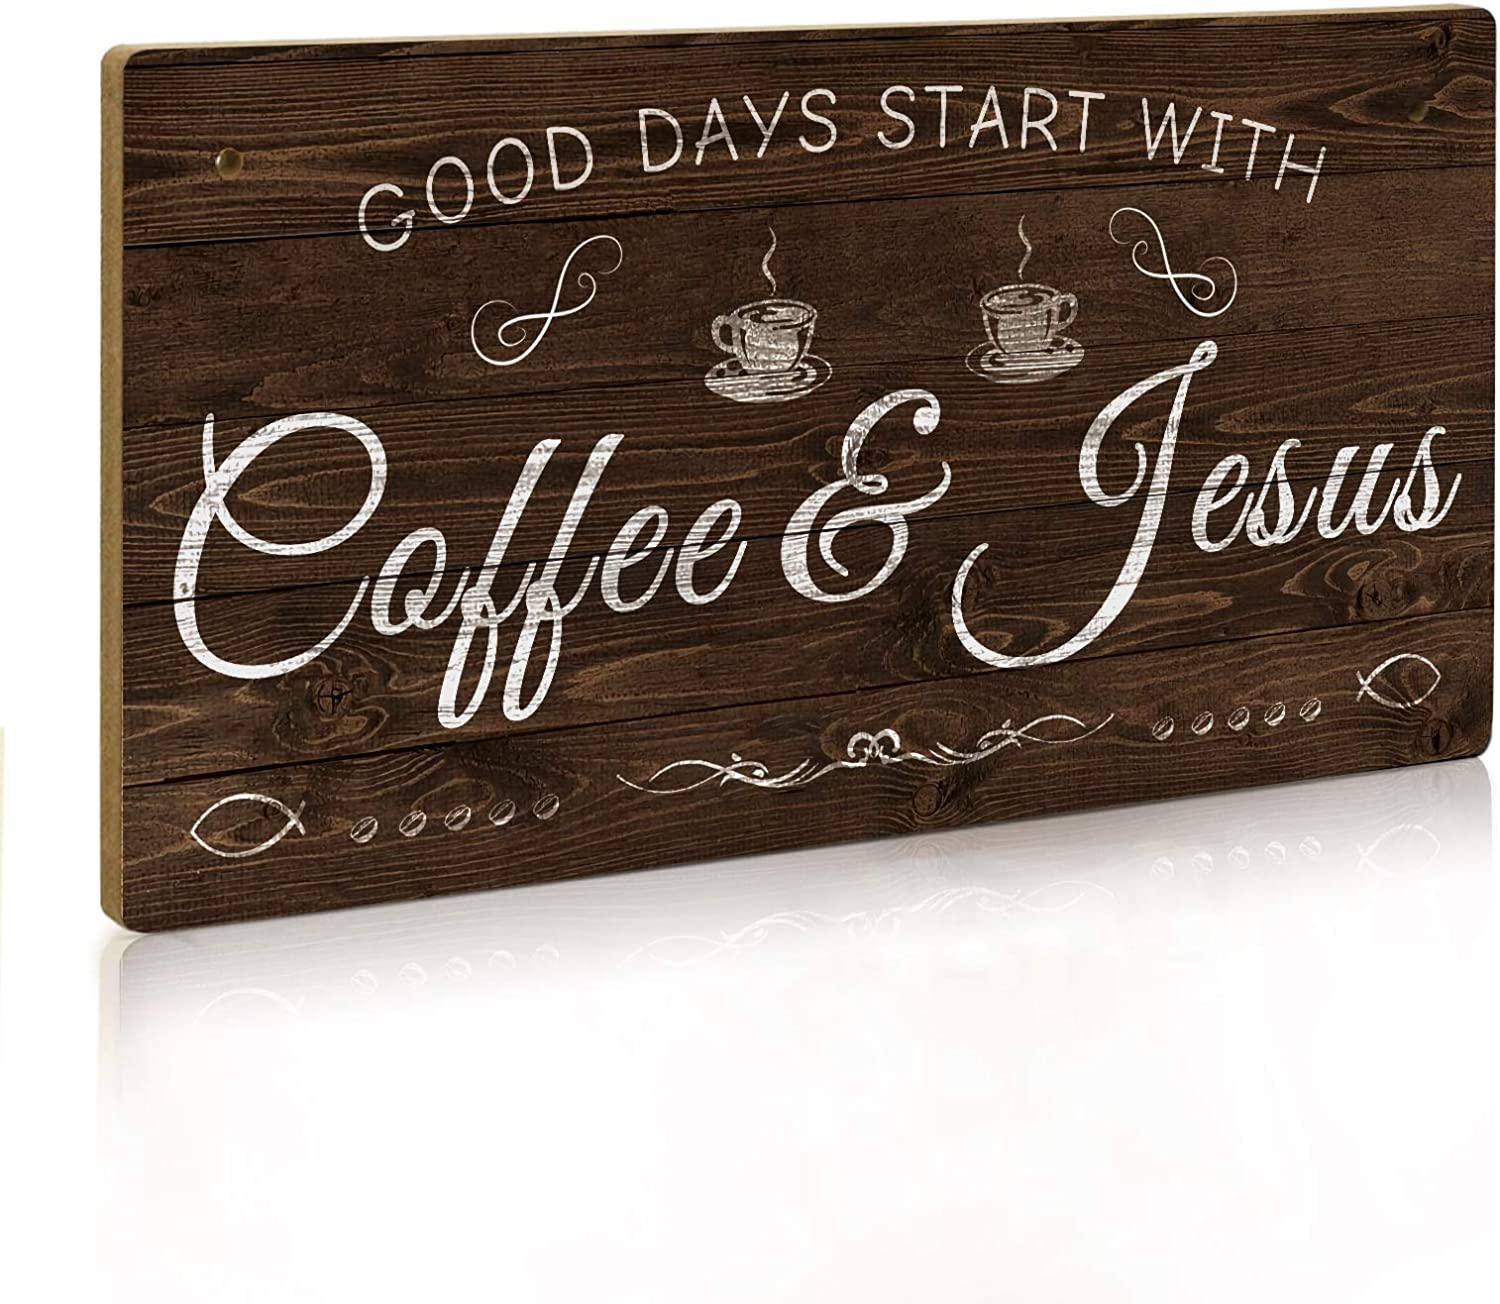 Putuo Decor Coffee Sign, Kitchen Coffee Bar Decor, 12 x 6 Hanging Plaque, Gifts for Coffee Lover (Good Days Start with Coffee & Jesus)